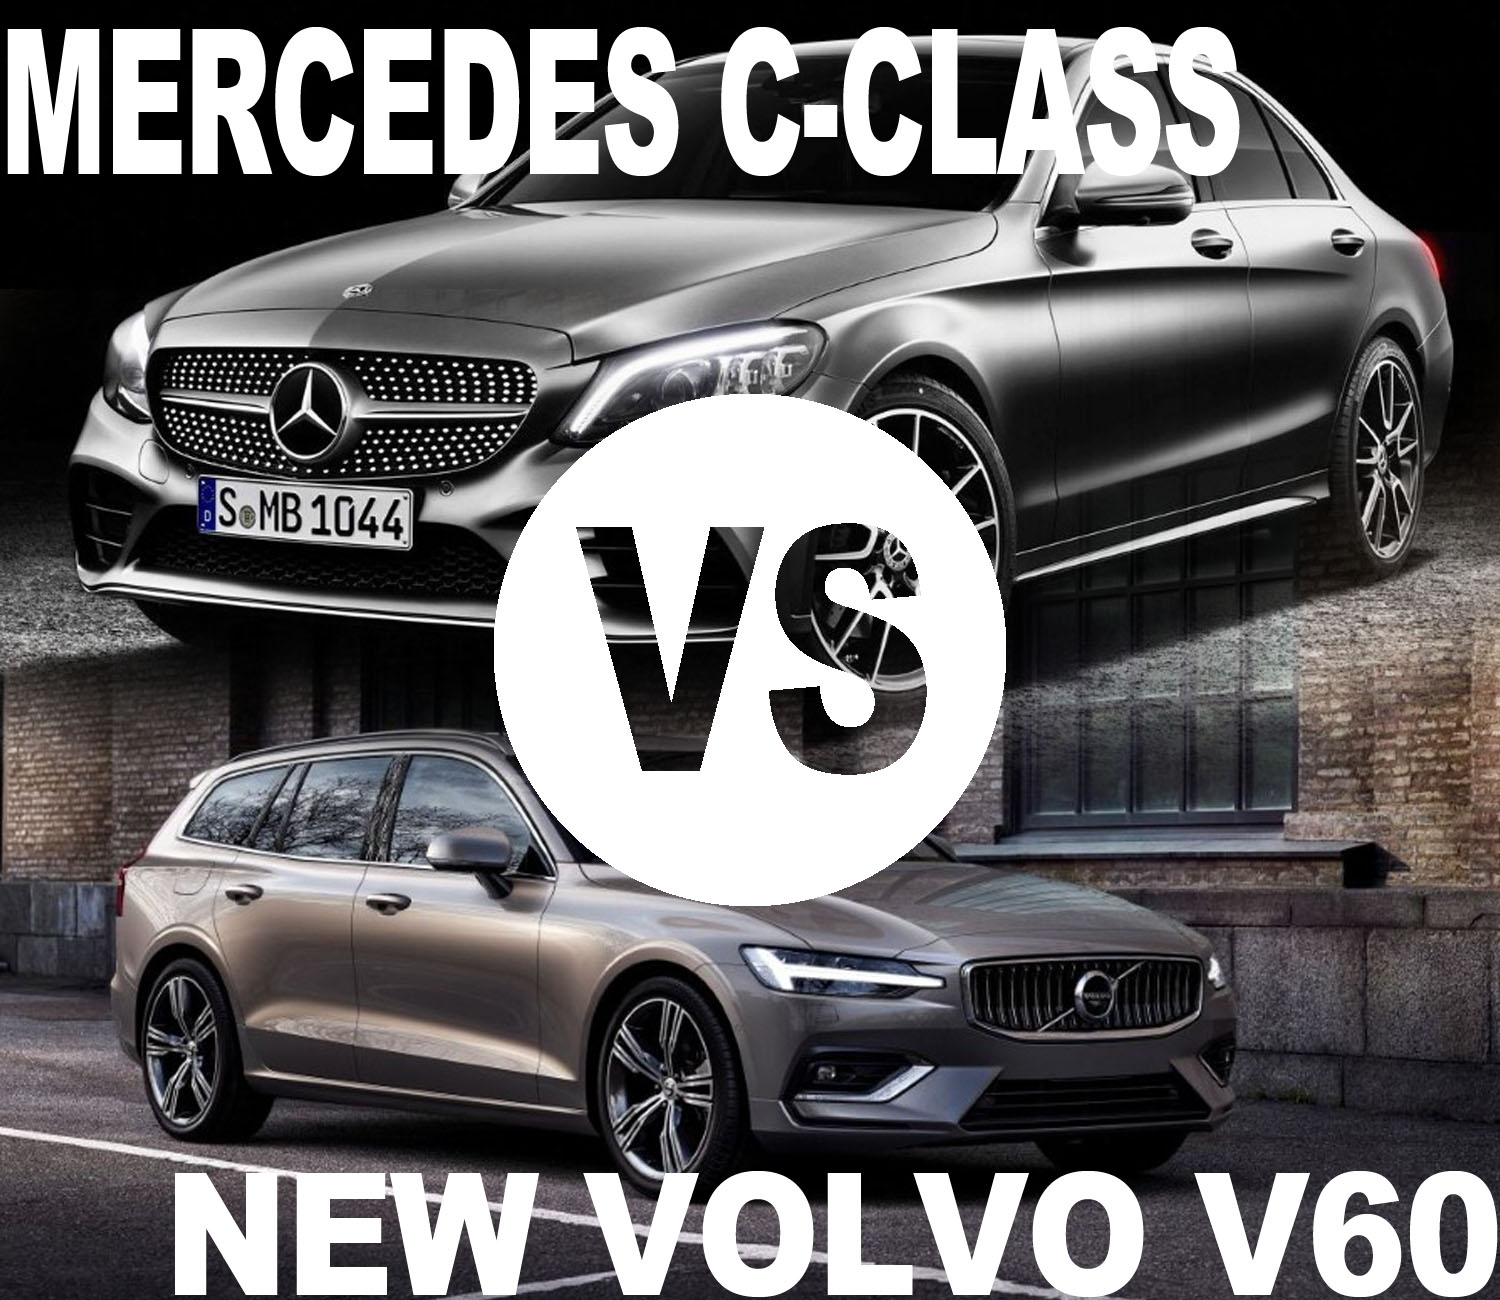 2020 Volvo V60 VS Mercedes C-Class Design